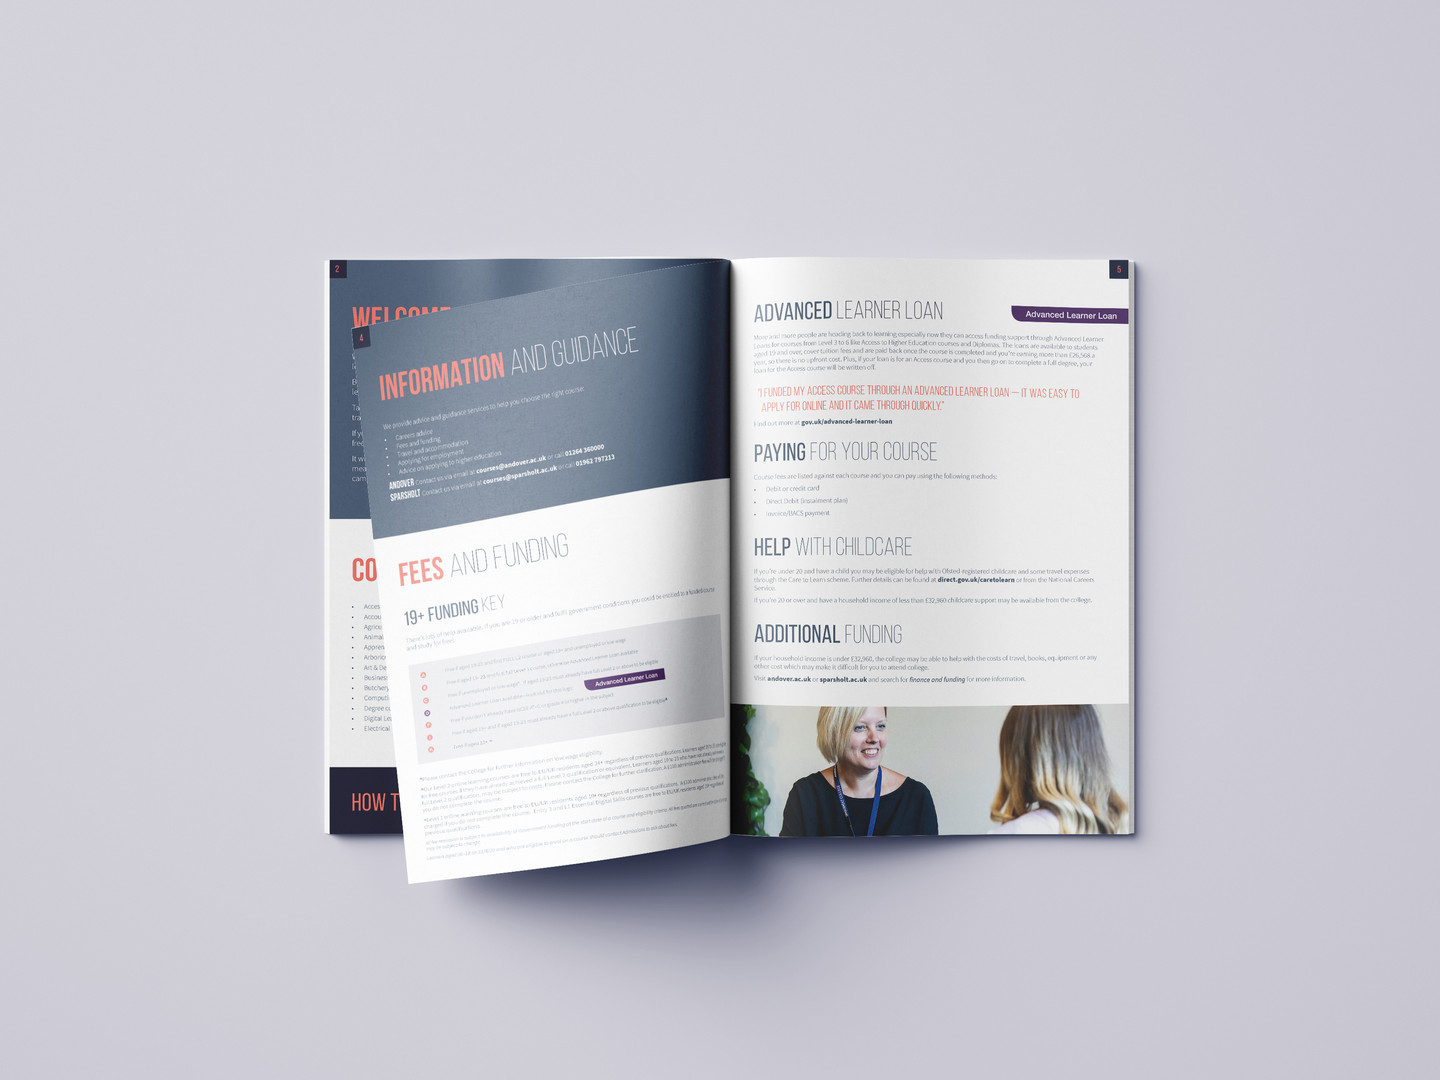 SCG Part-Time Course Guide Brochure insi